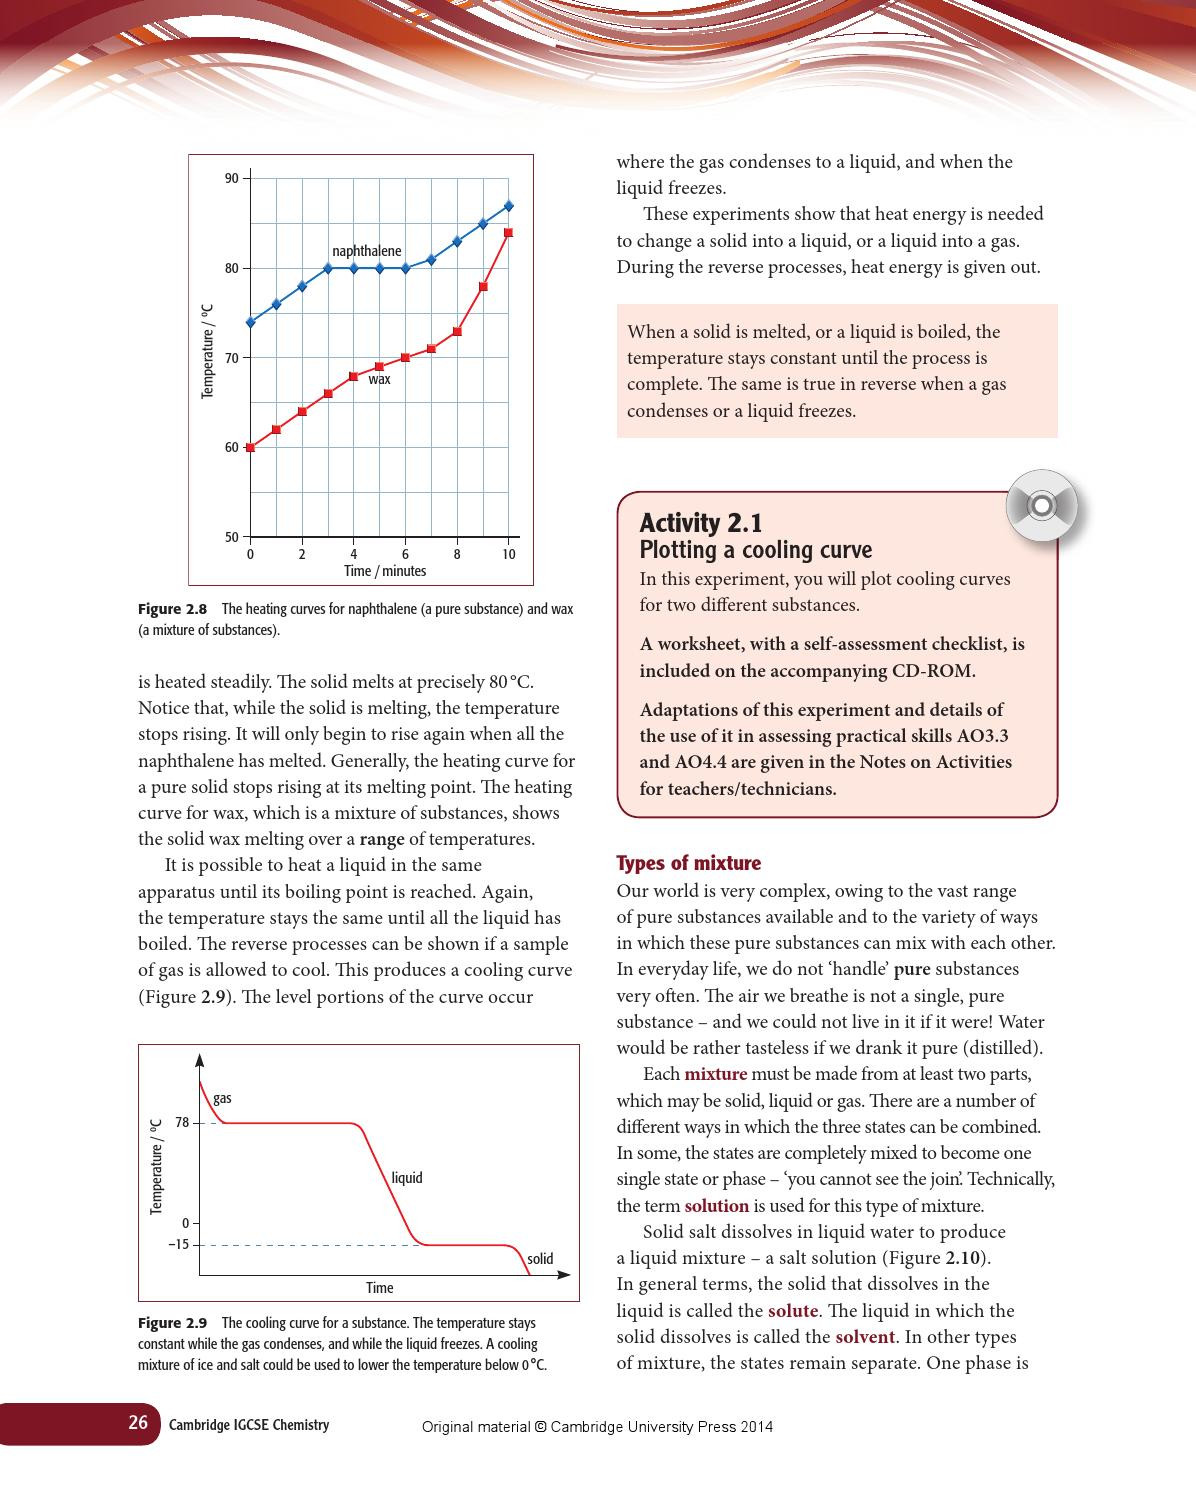 Heating and Cooling Curves Worksheet Cambridge Igcse Chemistry Coursebook Fourth Edition by